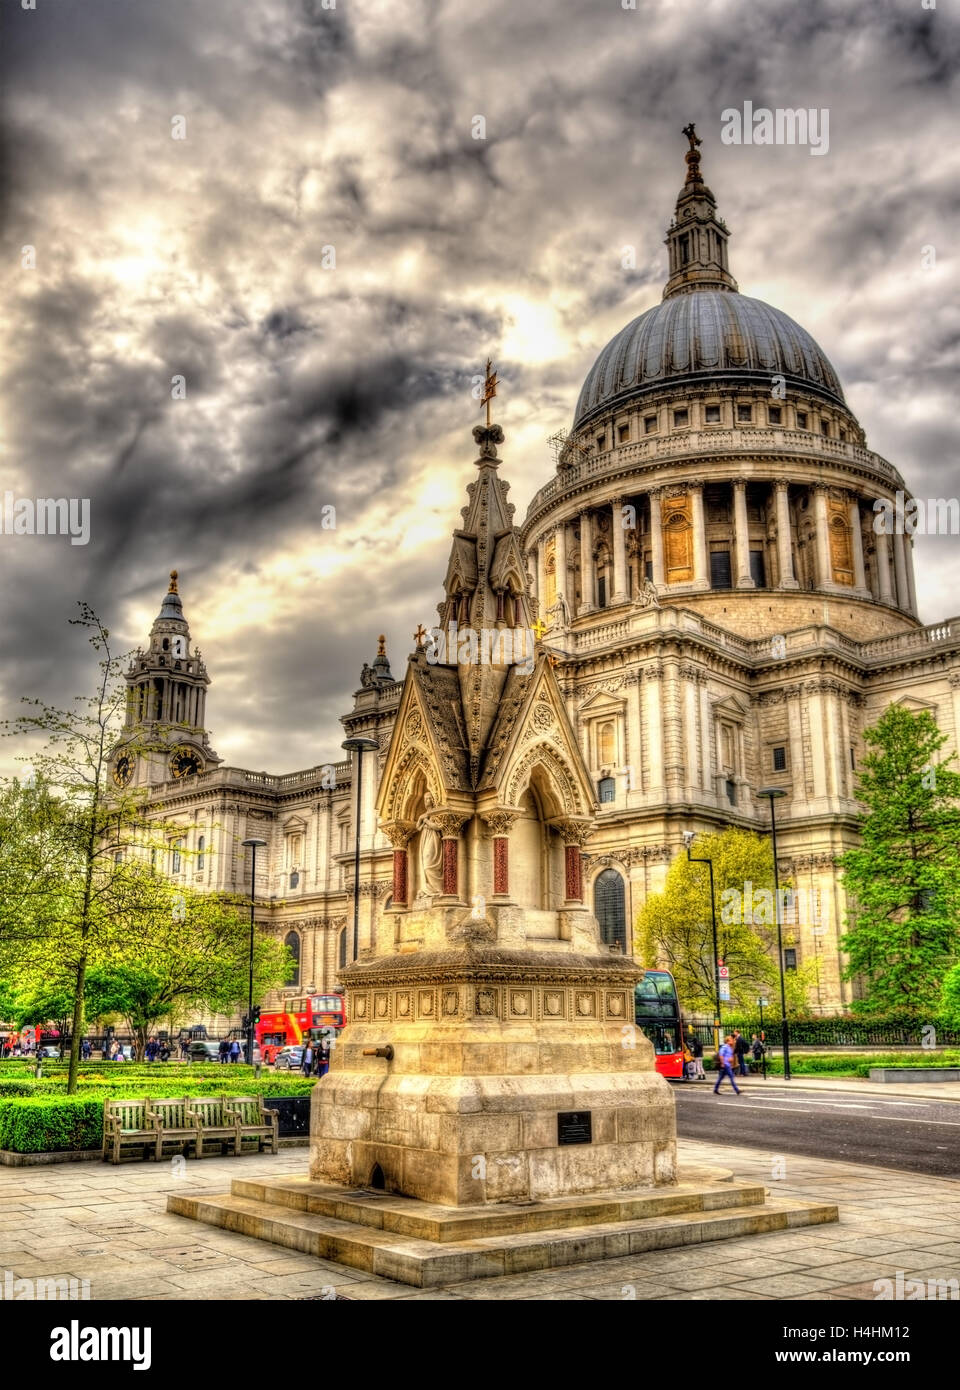 View of St Paul's Cathedral in London - England Stock Photo